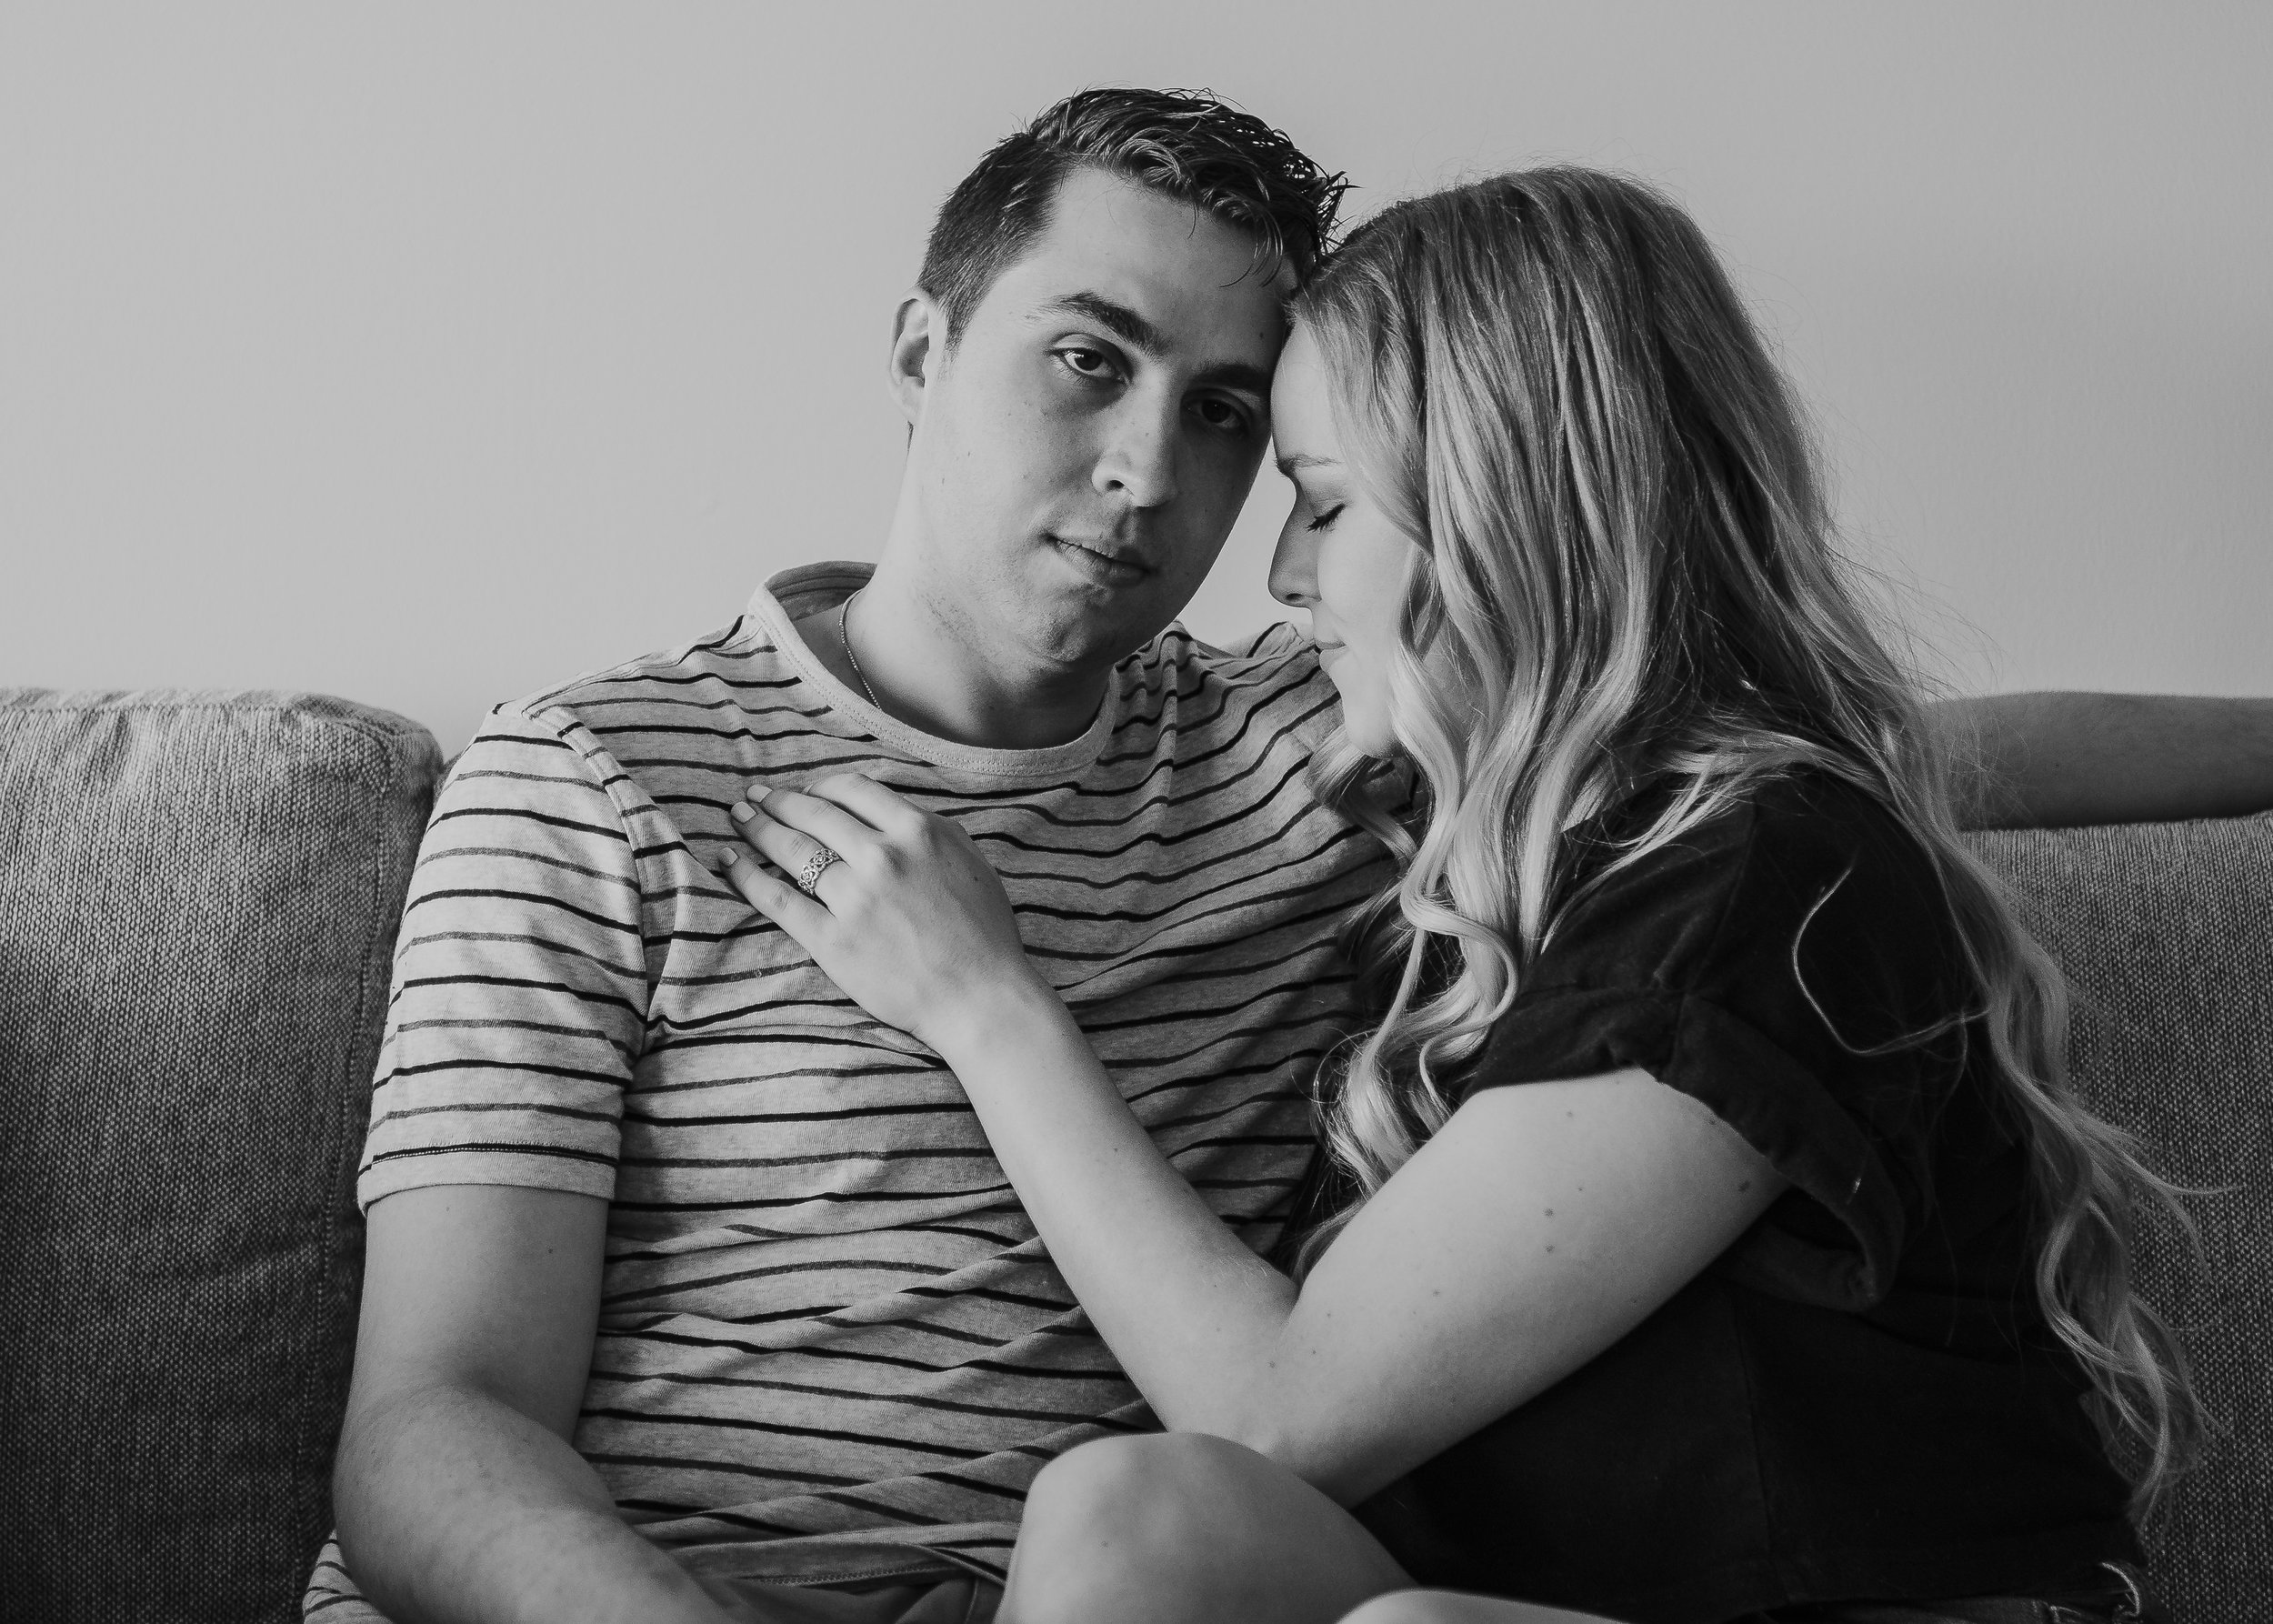 Anthony & Julia engagement session - gallery-102.jpg